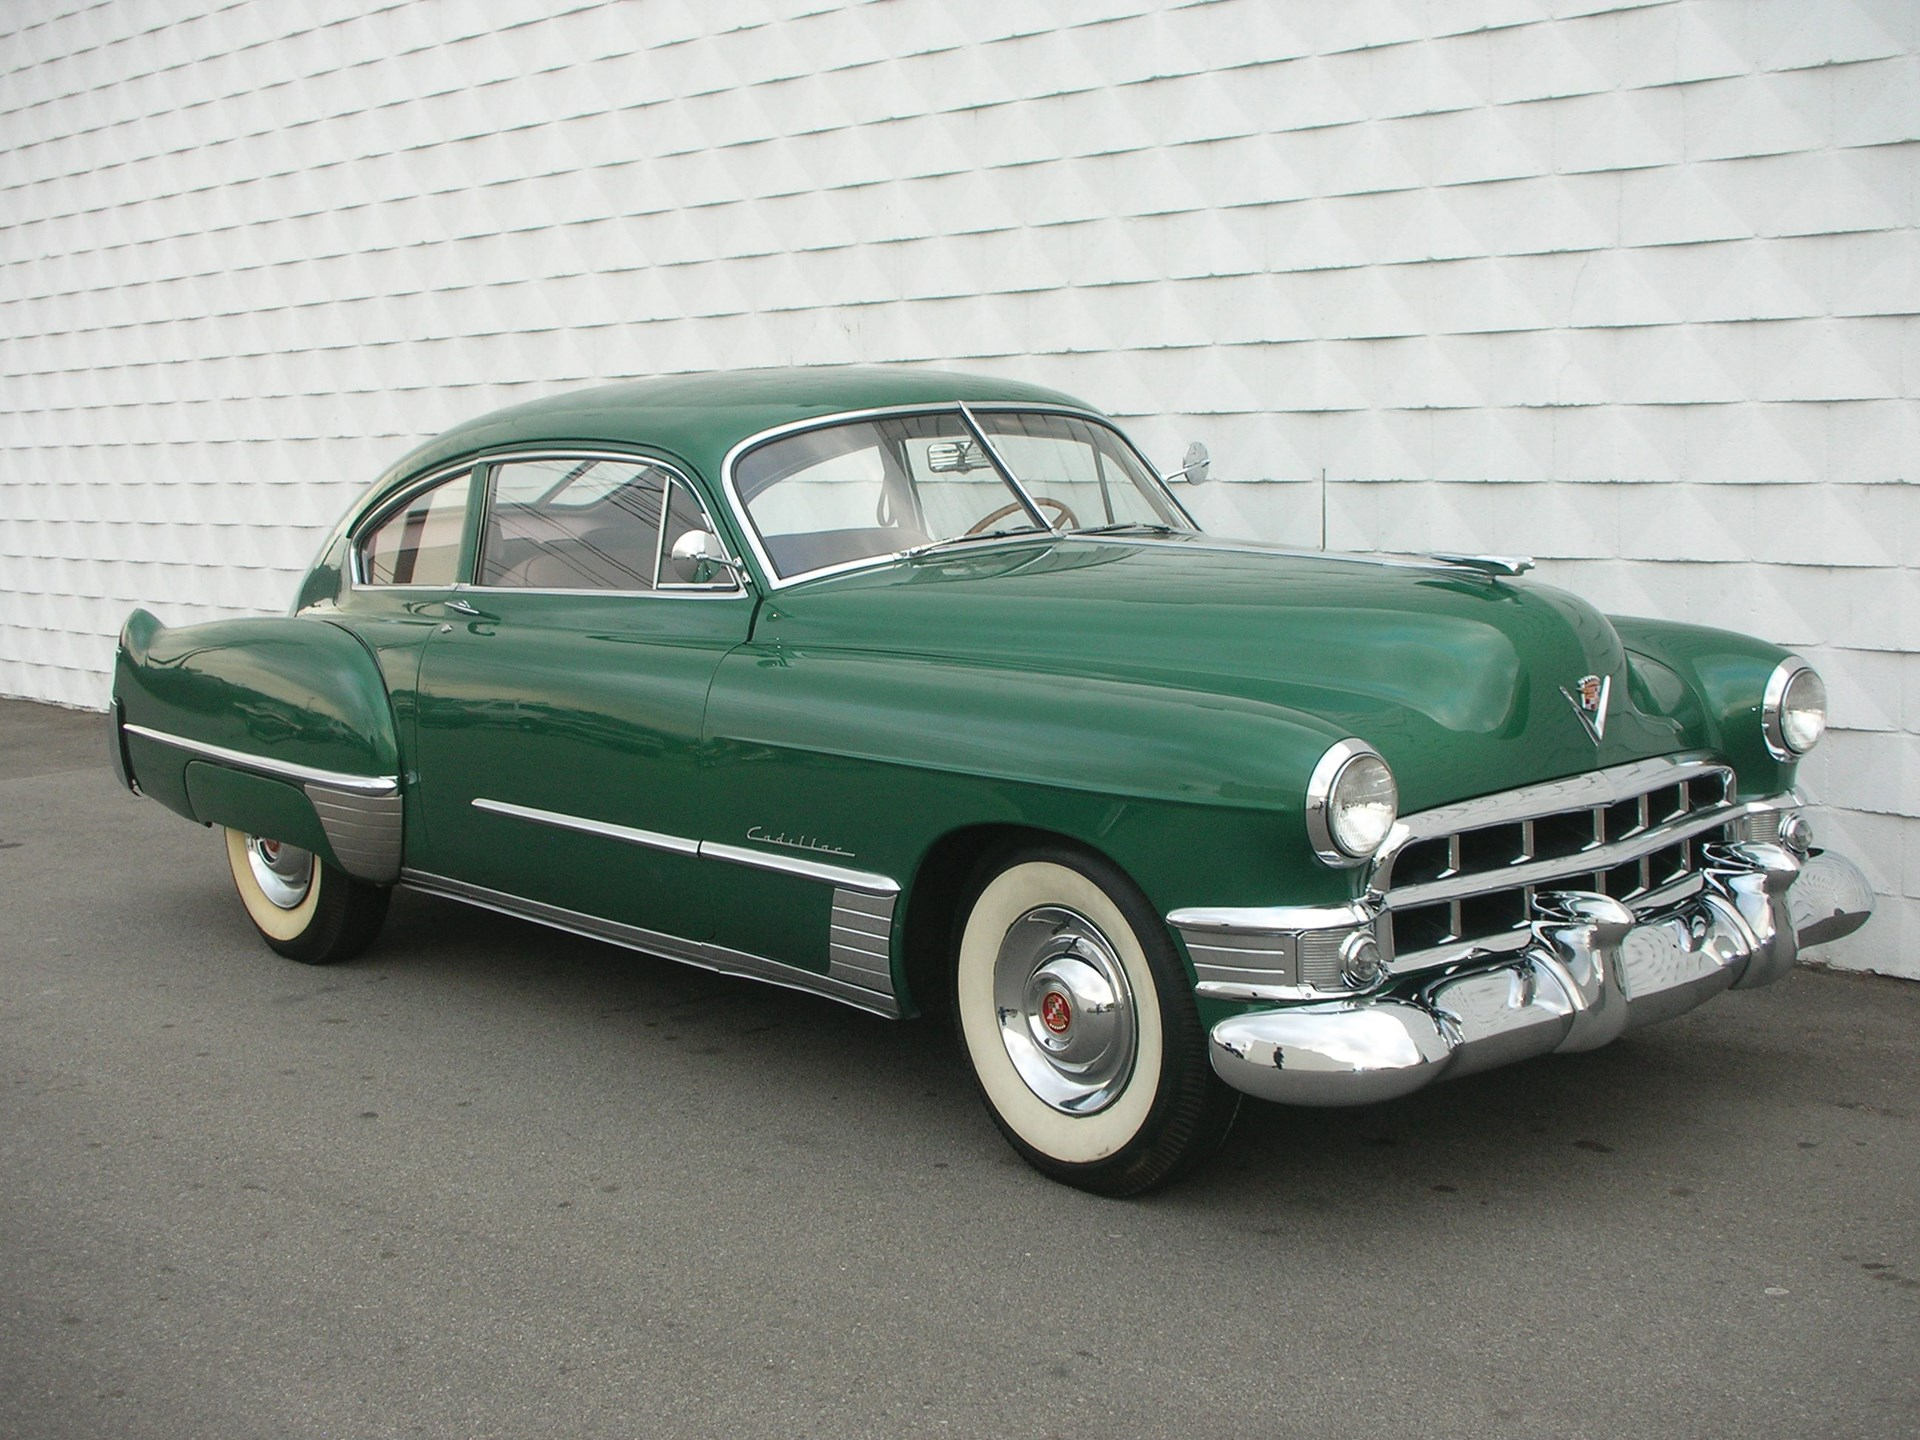 RM Sotheby's - 1949 Cadillac Series 62 Club Coupe ...